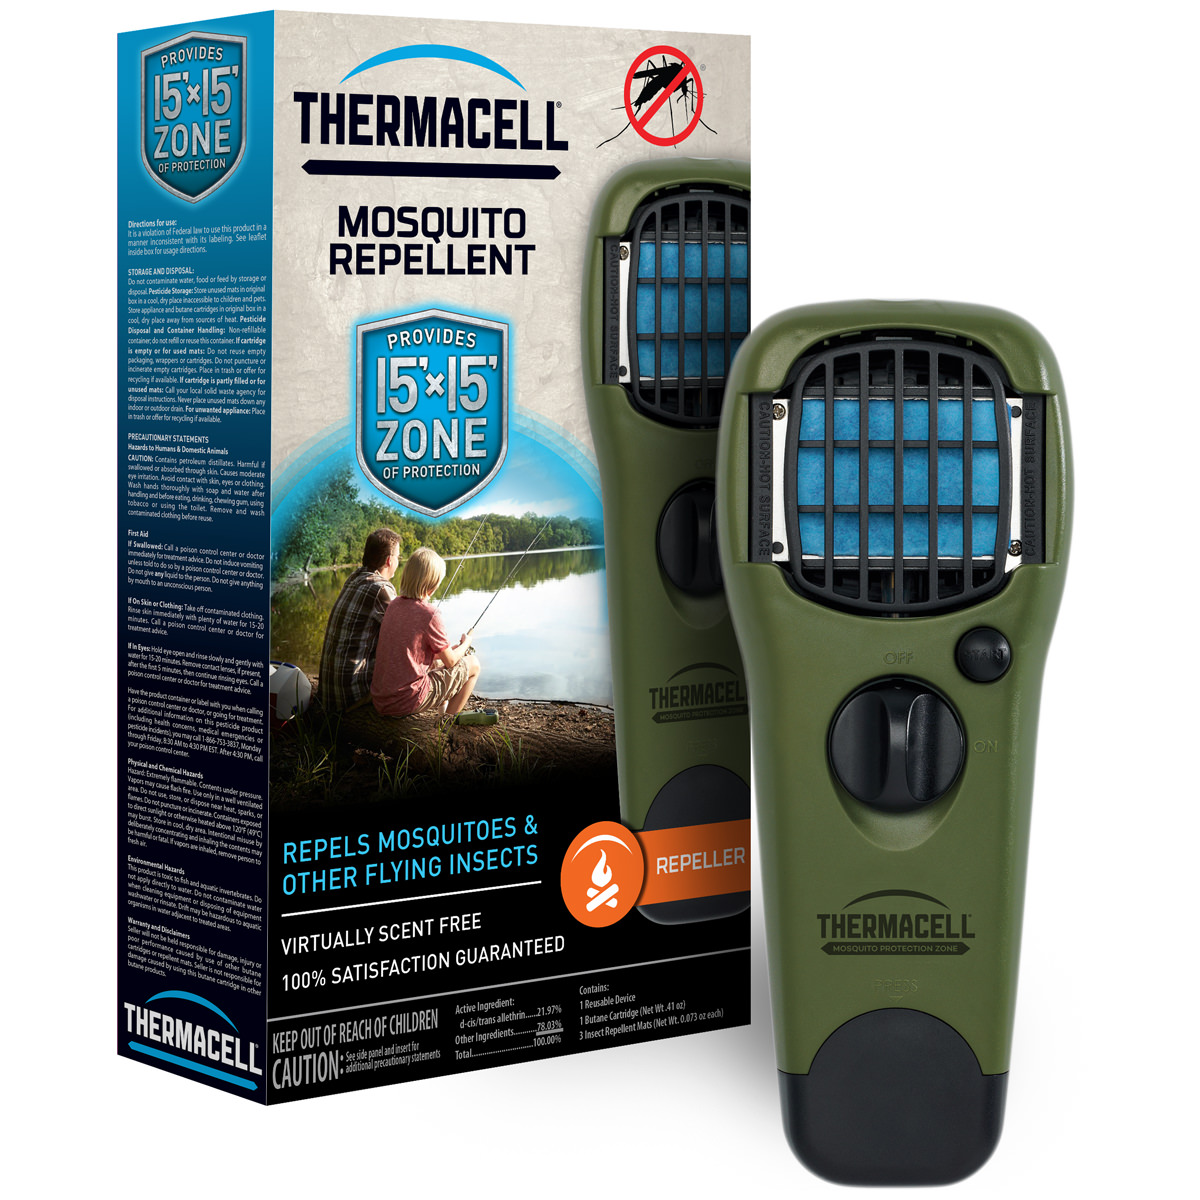 Thermacell Mosquito Repellent Portable Repeller  Hour Protection